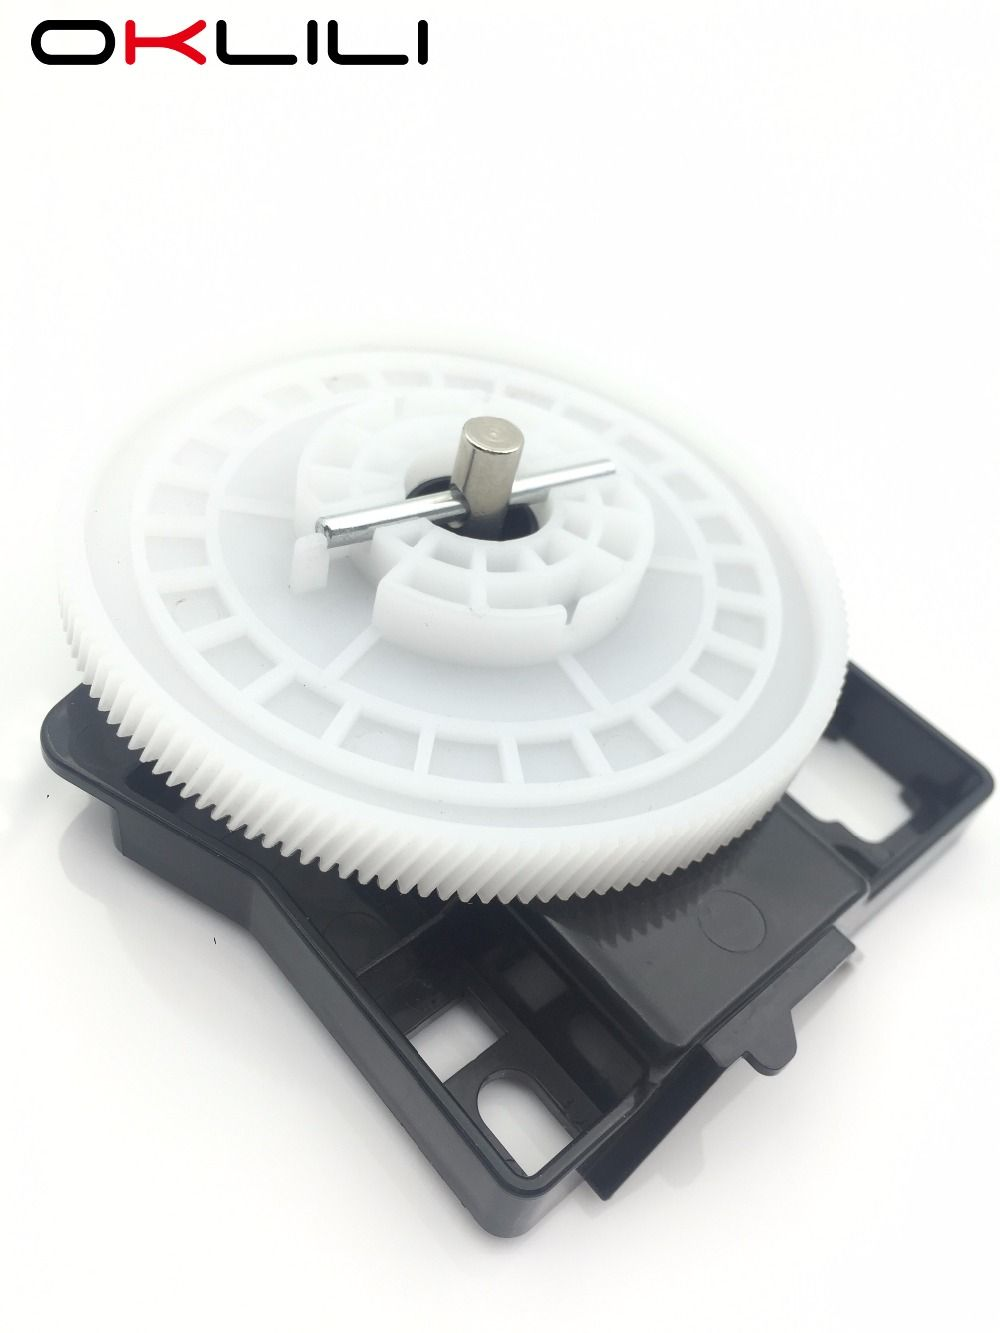 New Rc3 2497 000 Toner Drive Assy Cover Gear Support Frame Hp 35a Compatible Cb435a Laserjet P1002 P1003 P1004 P1005 P1006 P1009 Grade A